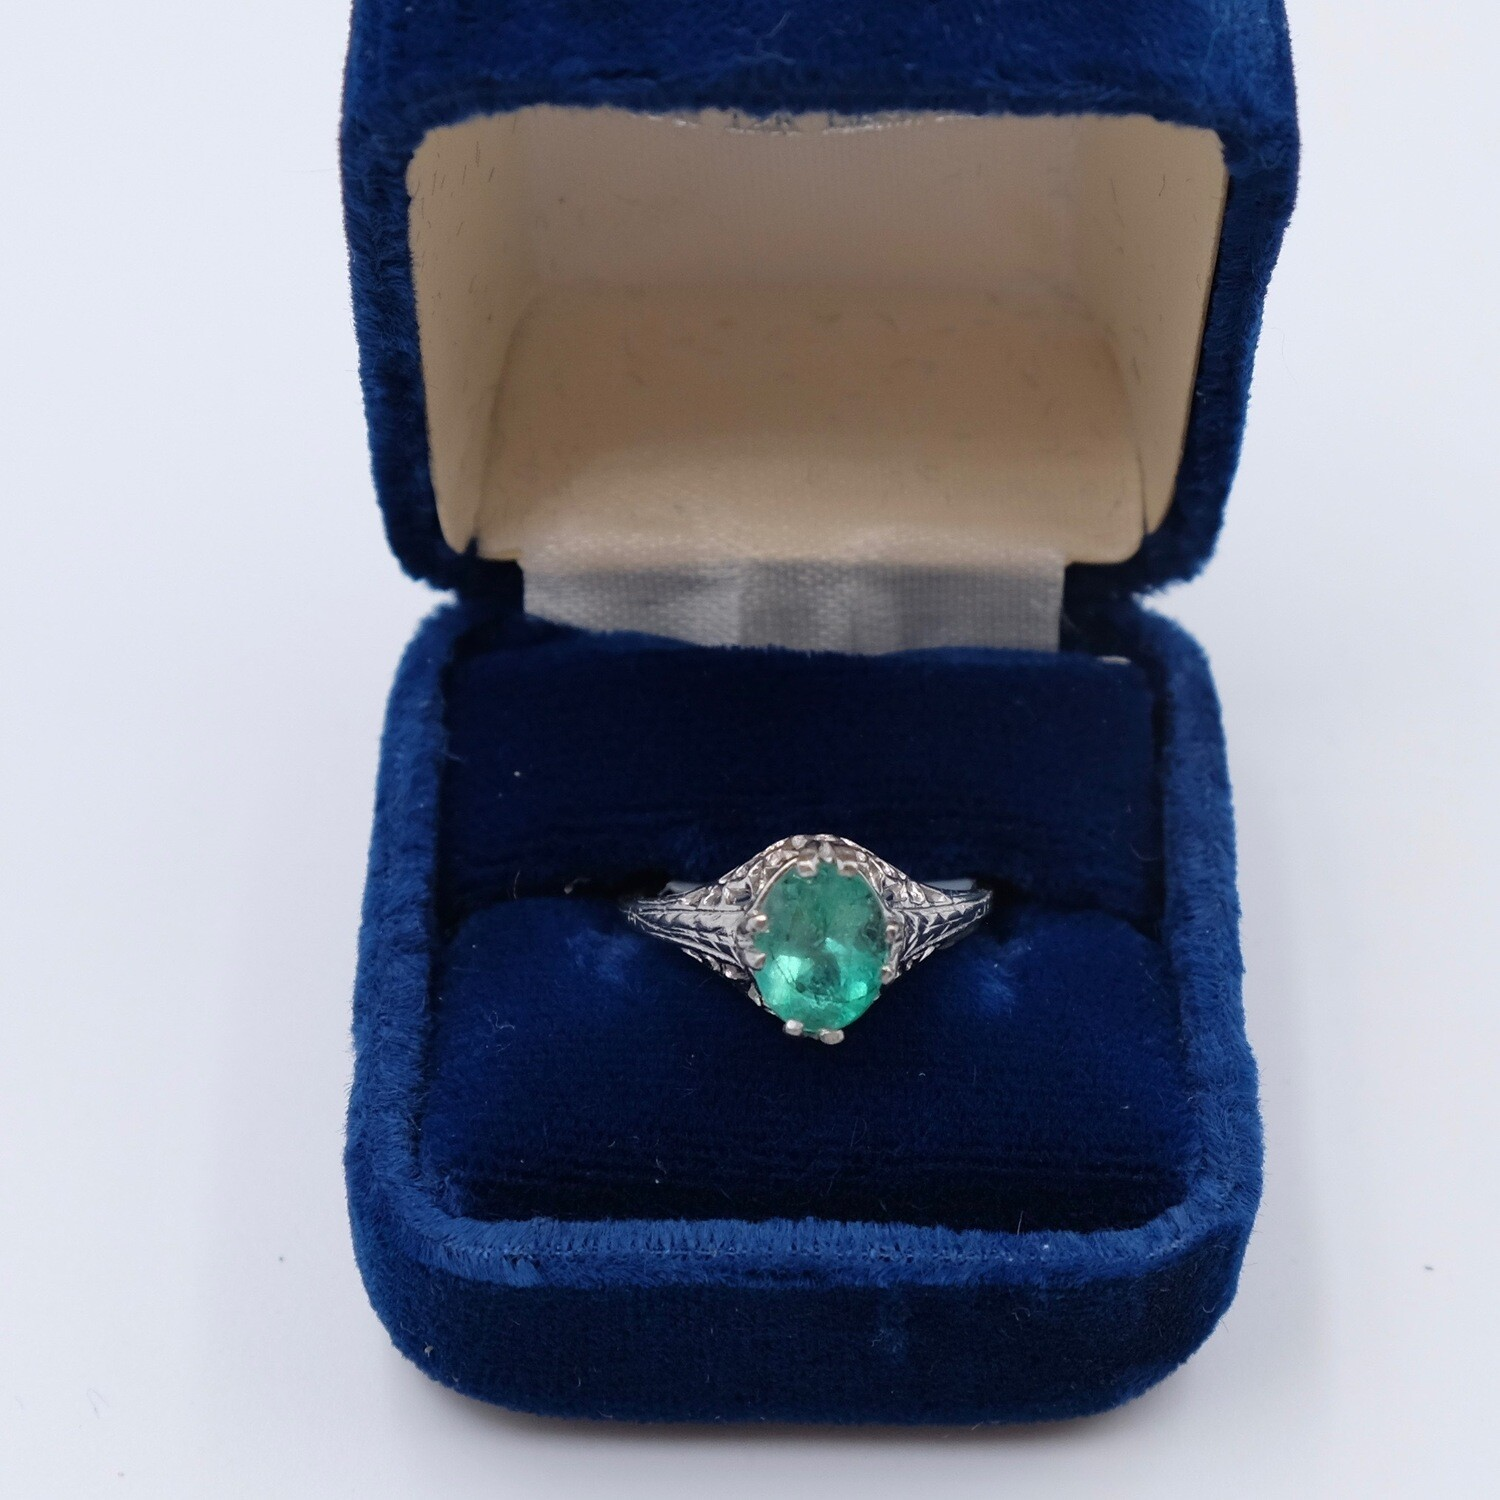 Antique Platinum Ring with Emerald